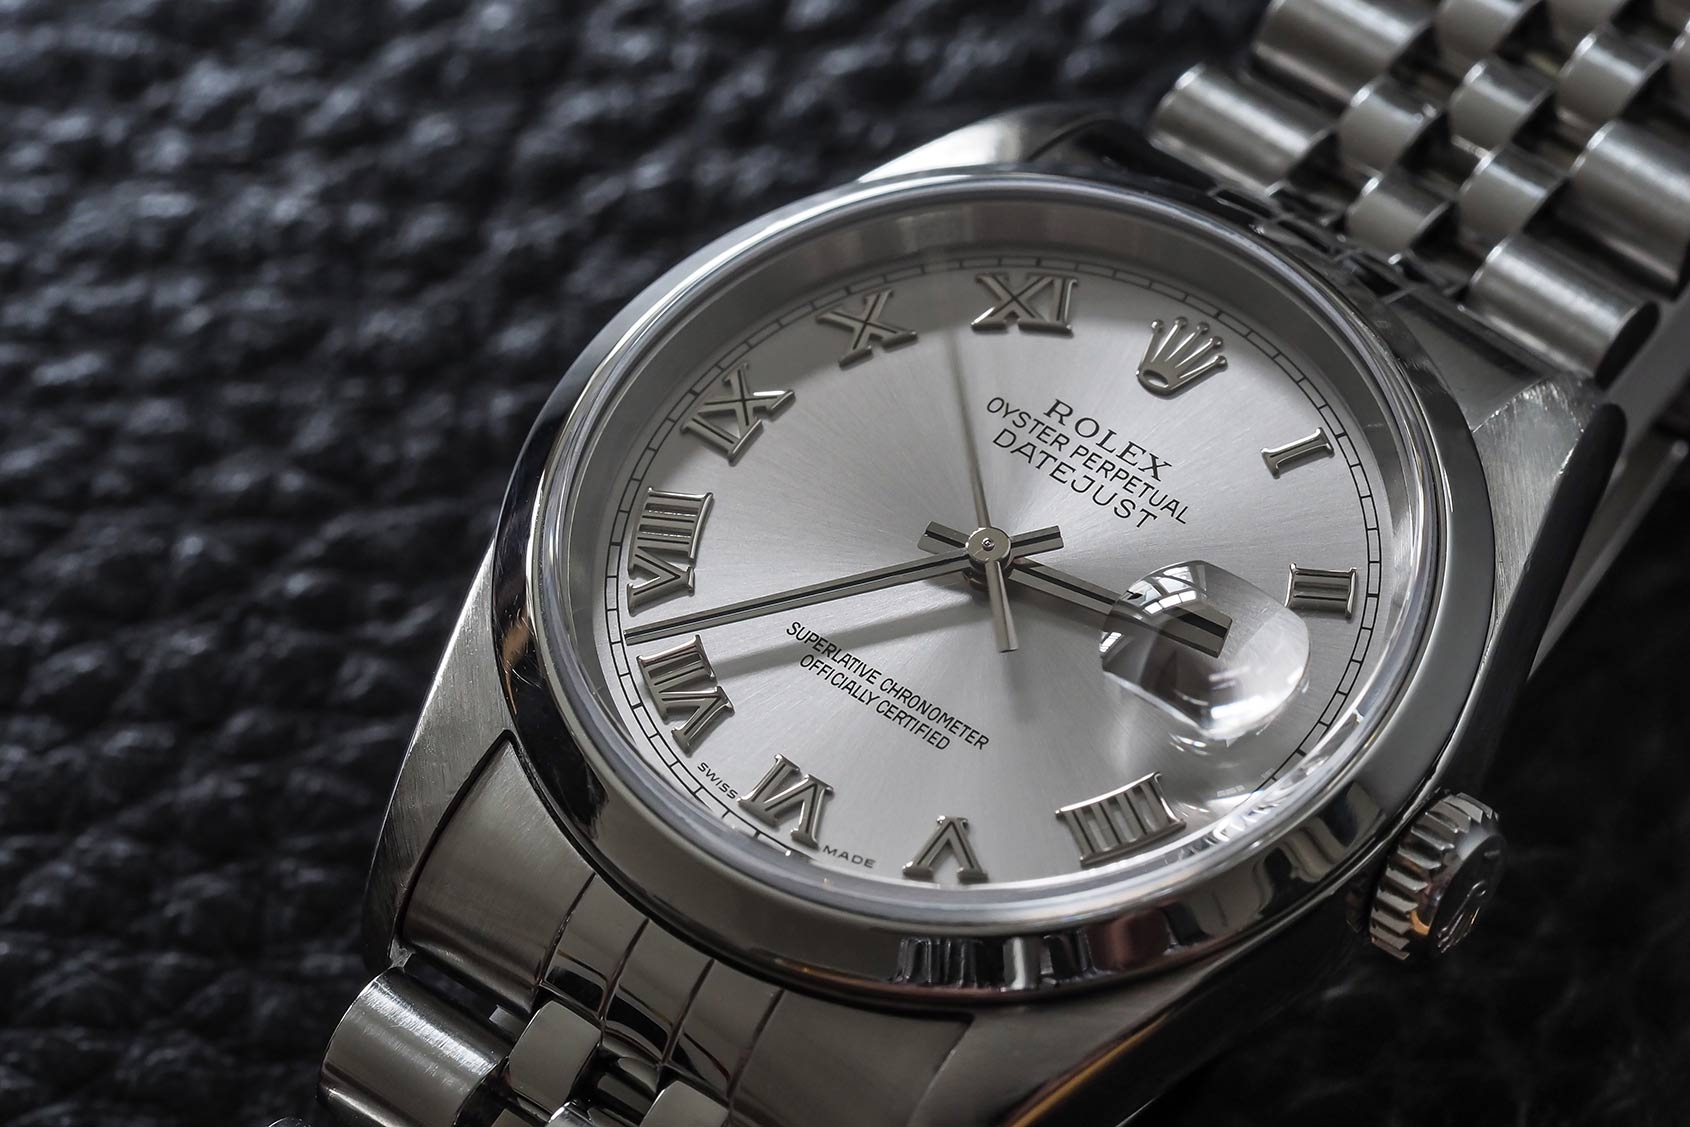 What it's like to wear a crown on your wrist – 24 months with a Rolex Datejust